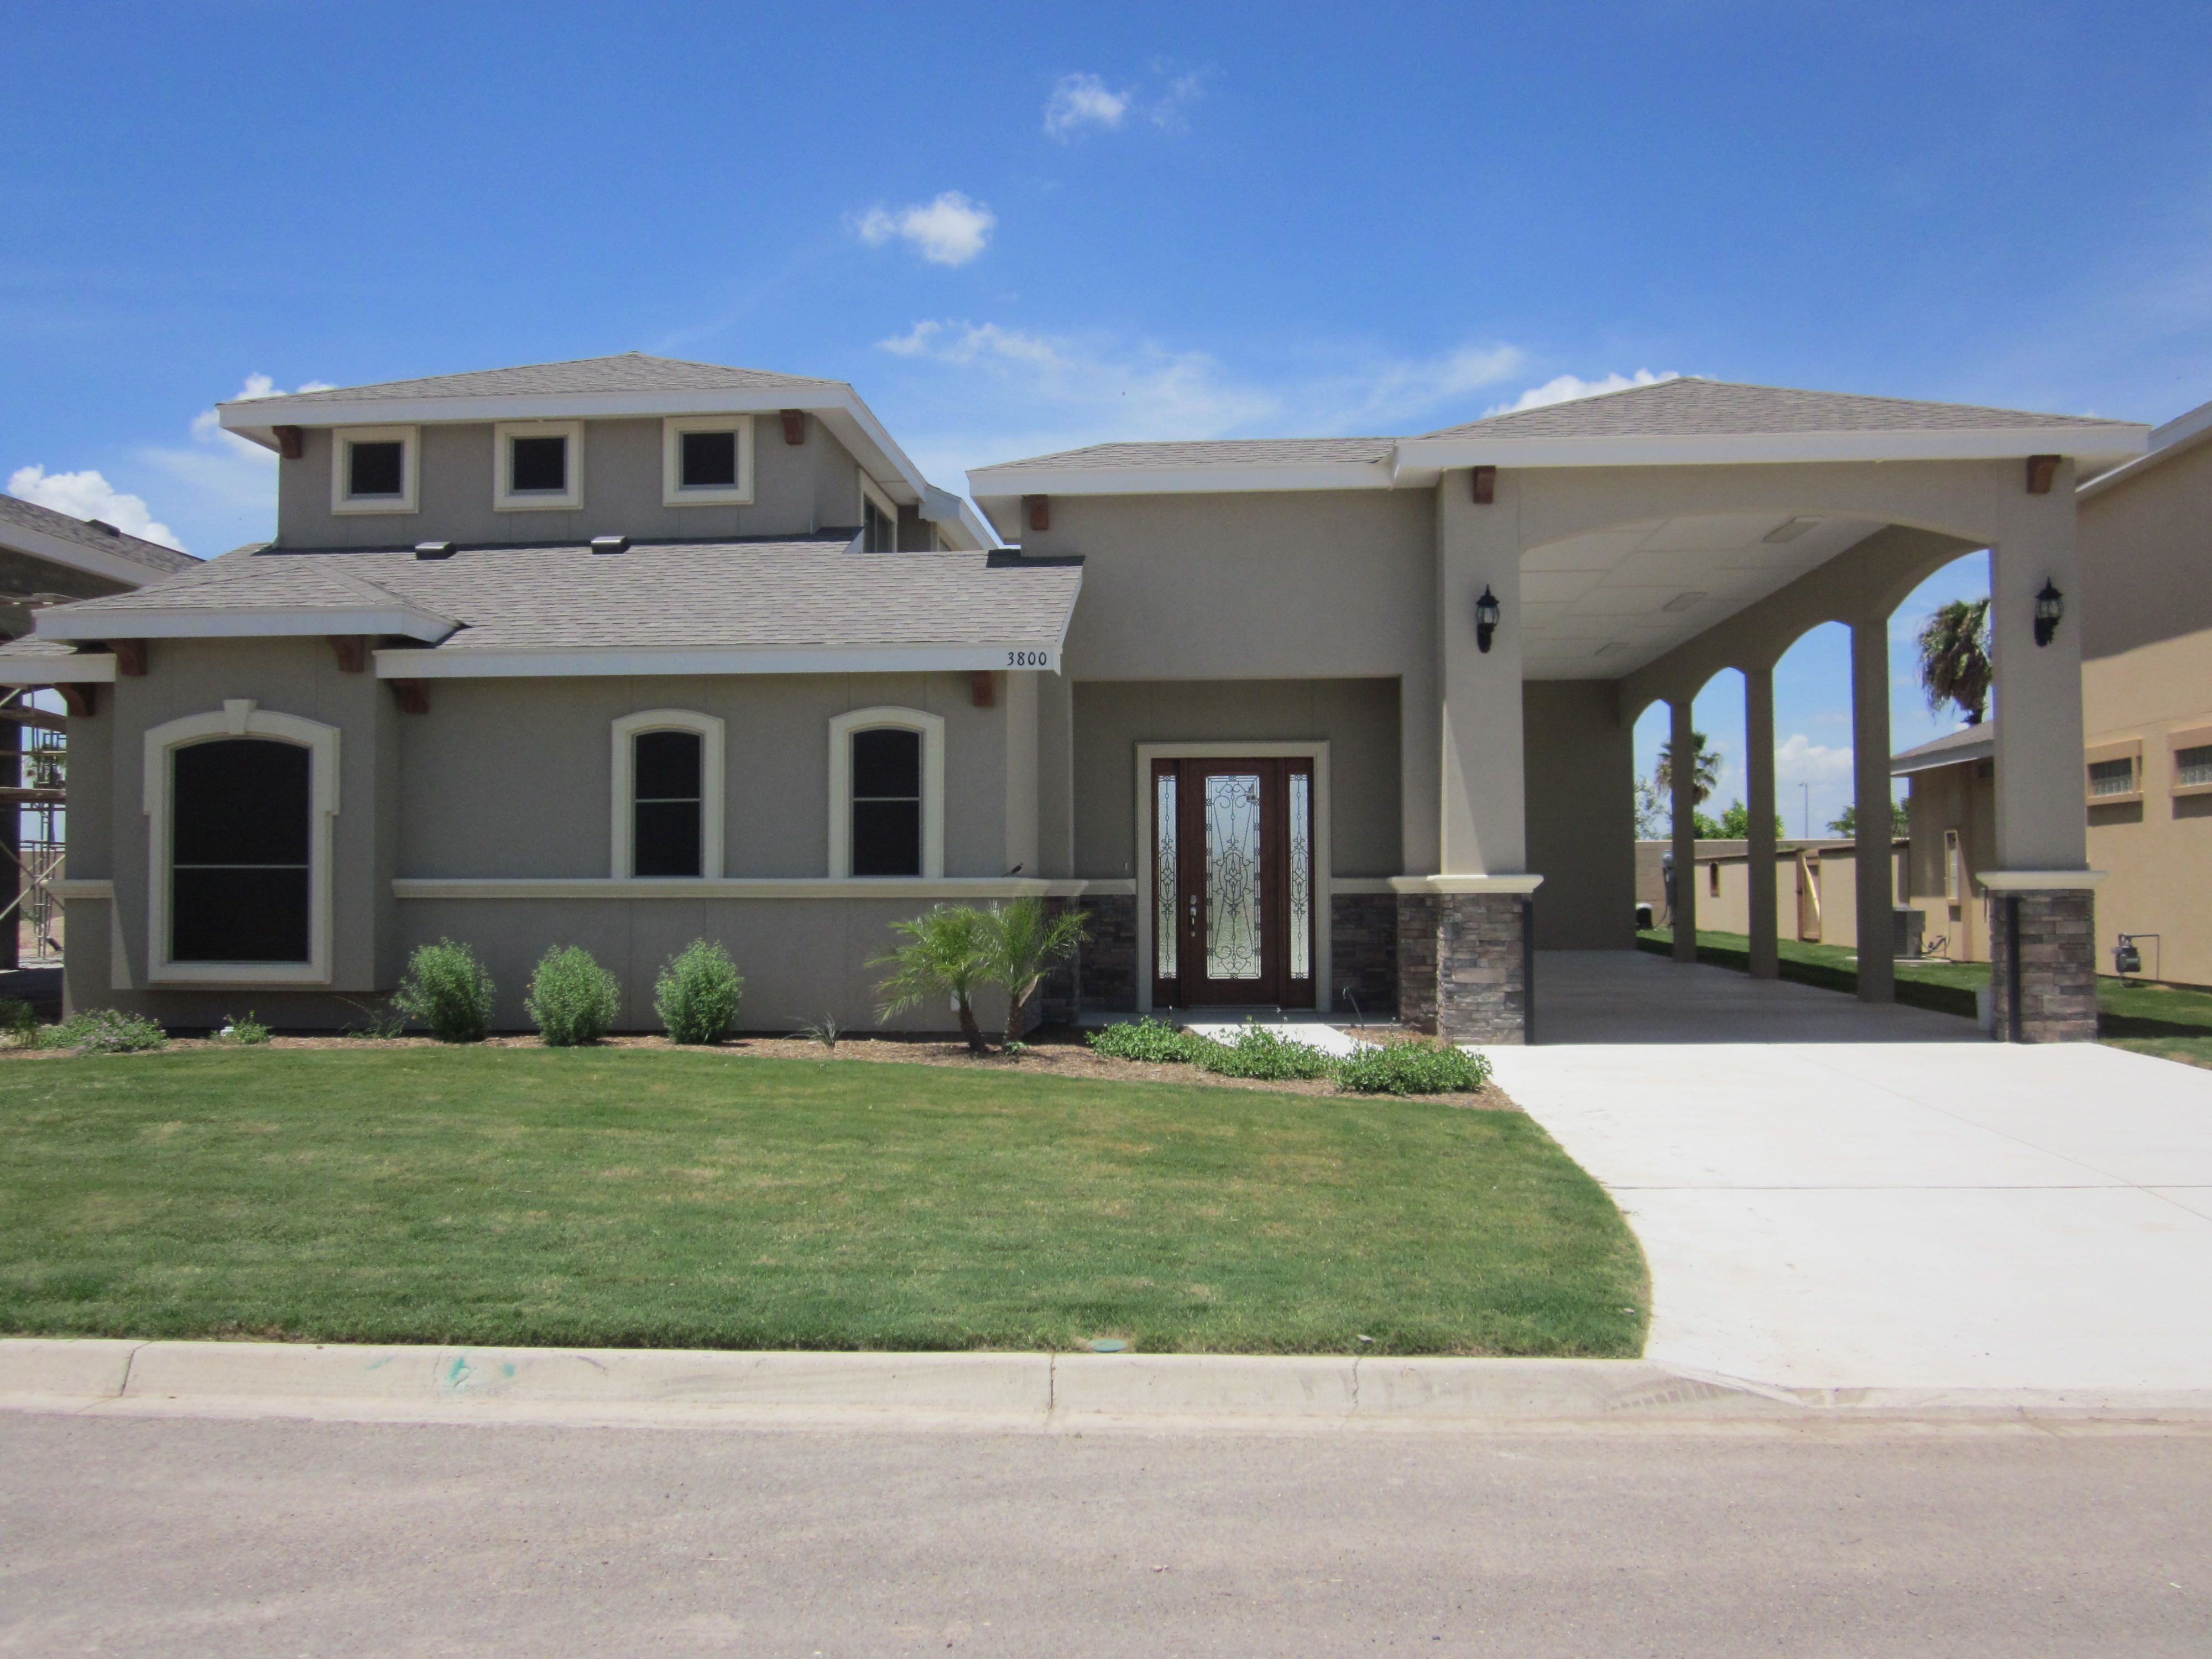 New Construction Homes & Plans in Puerto Rico, TX | 317 Homes